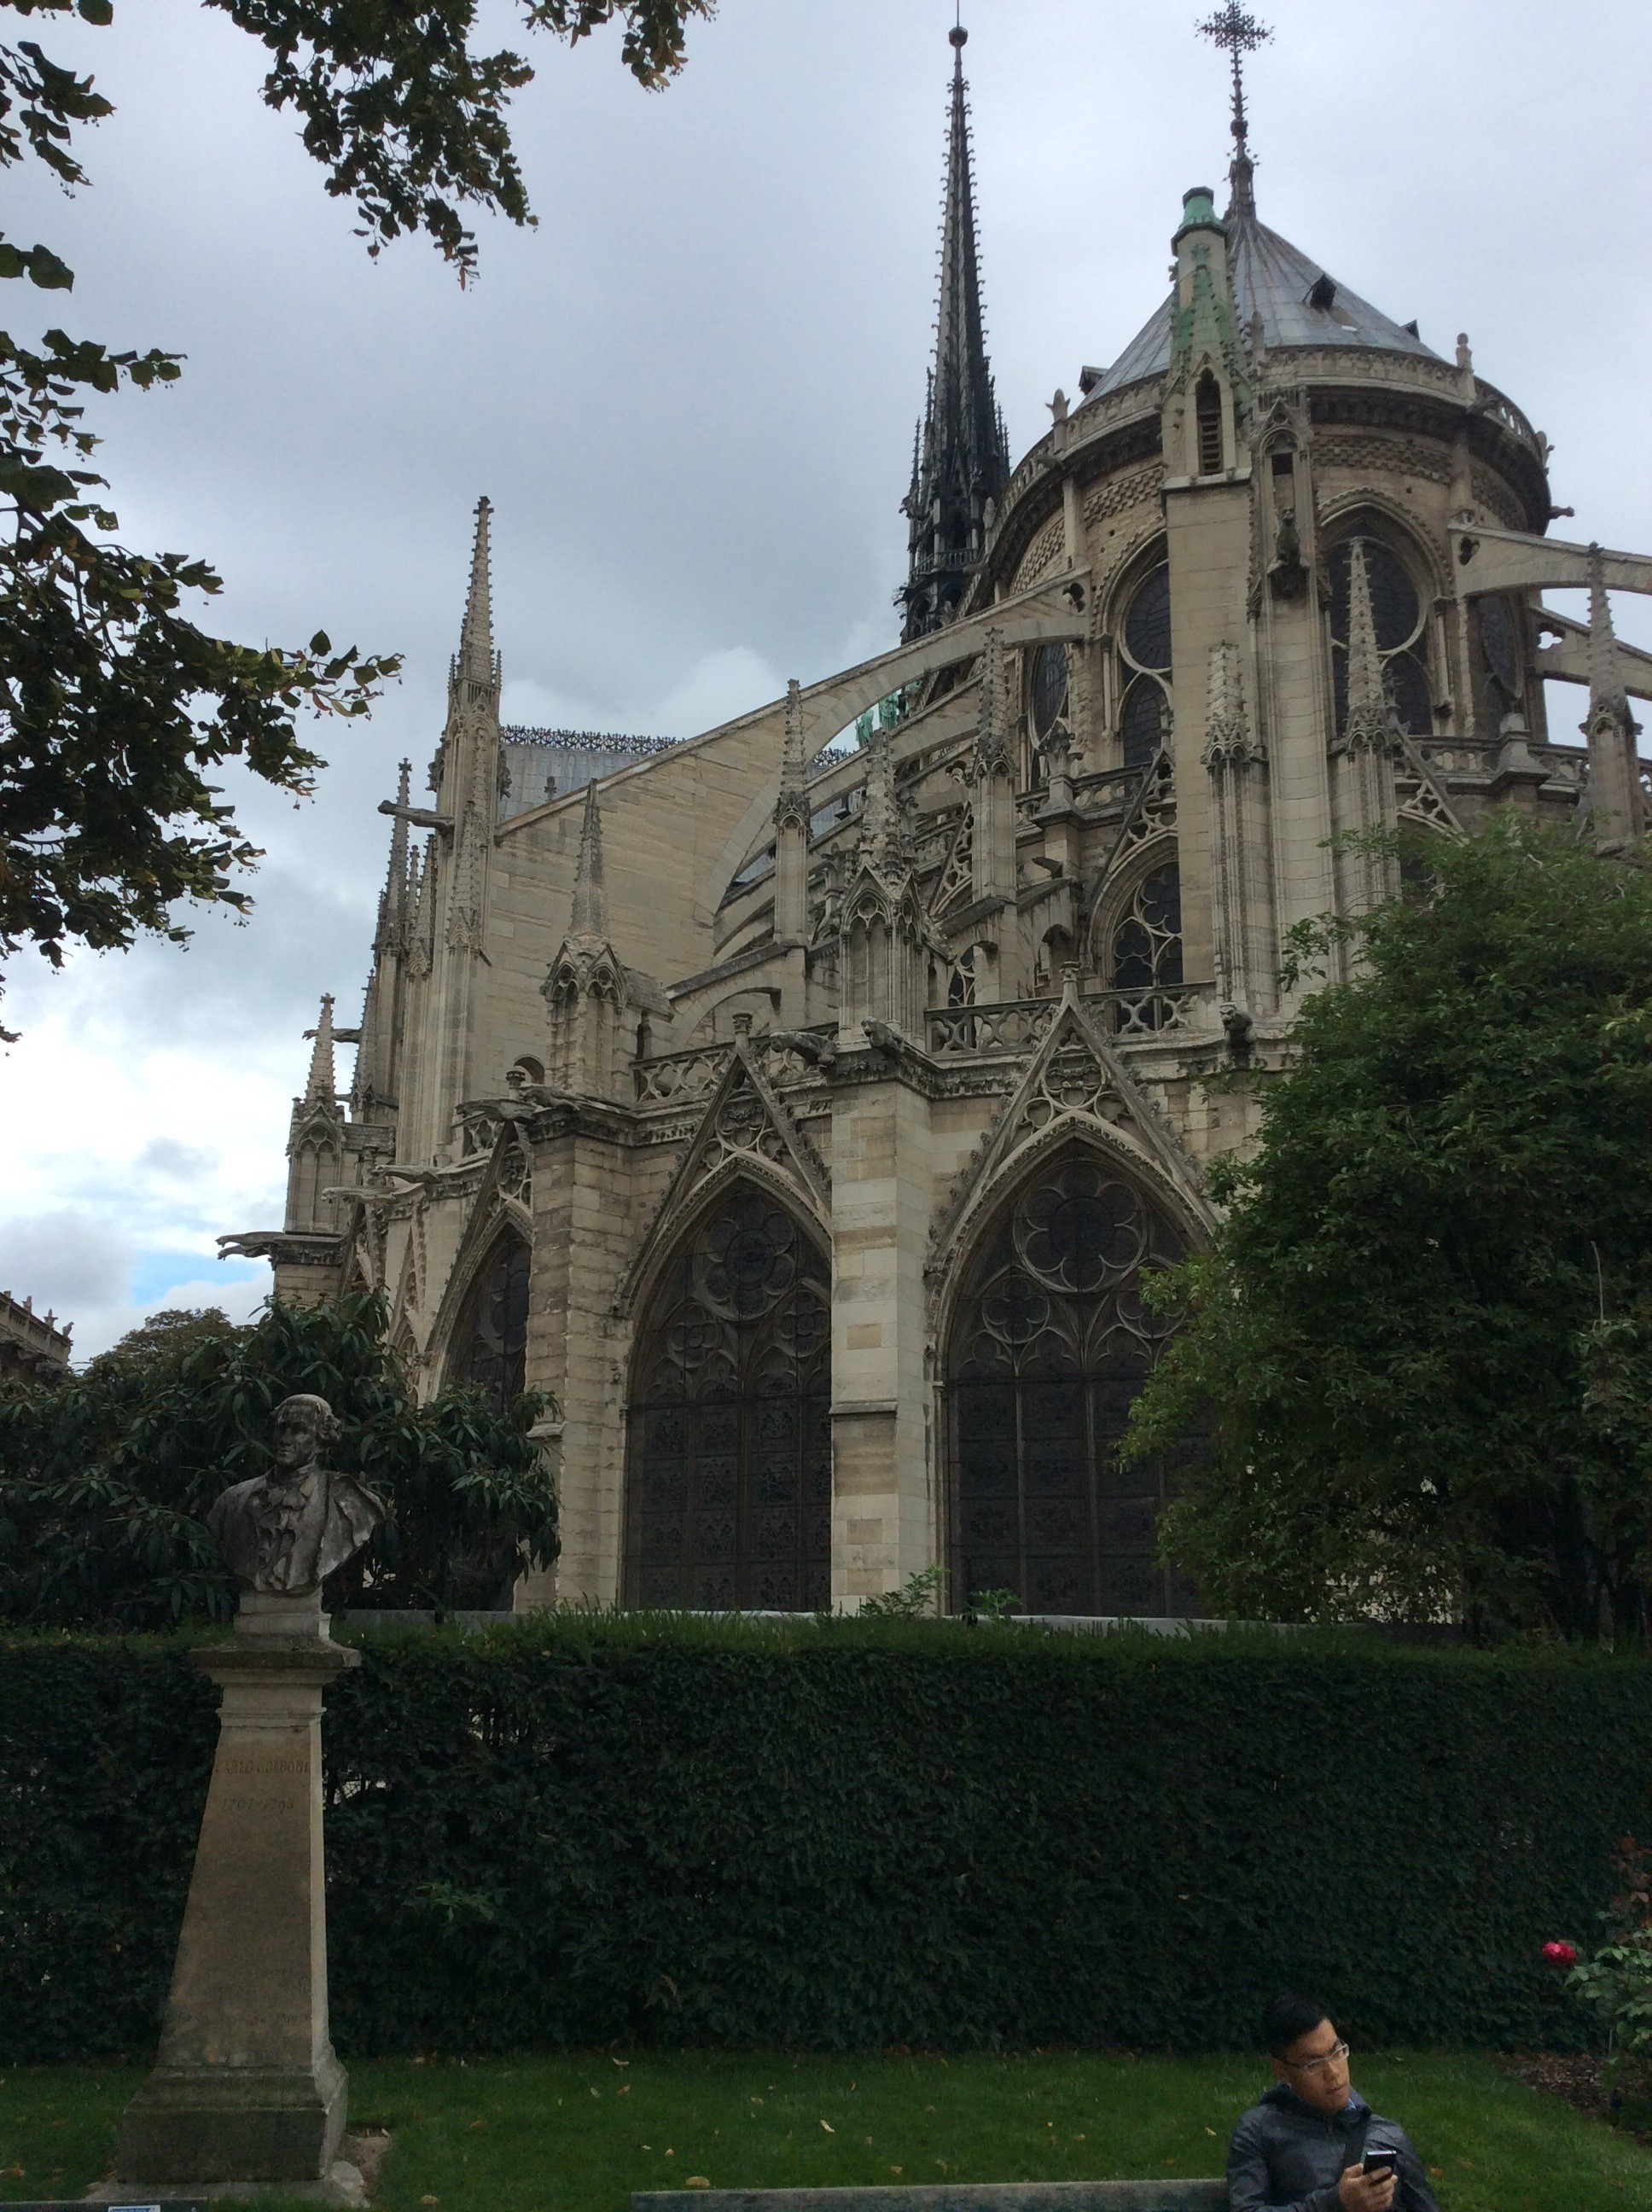 Another view of Notre Dame